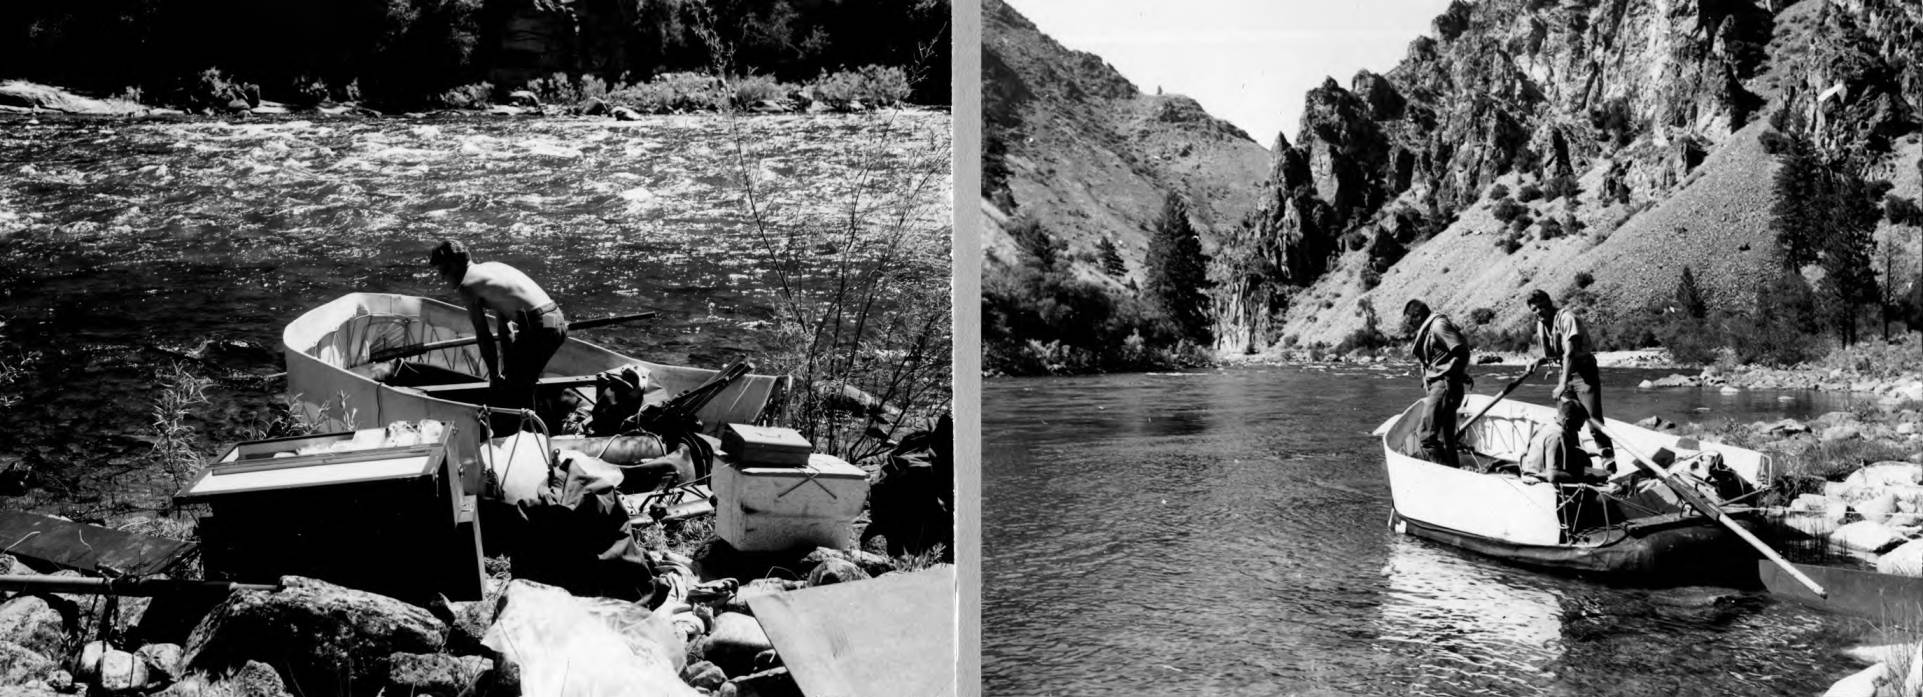 item thumbnail for Loading for float trip on Middle Fork of Salmon River